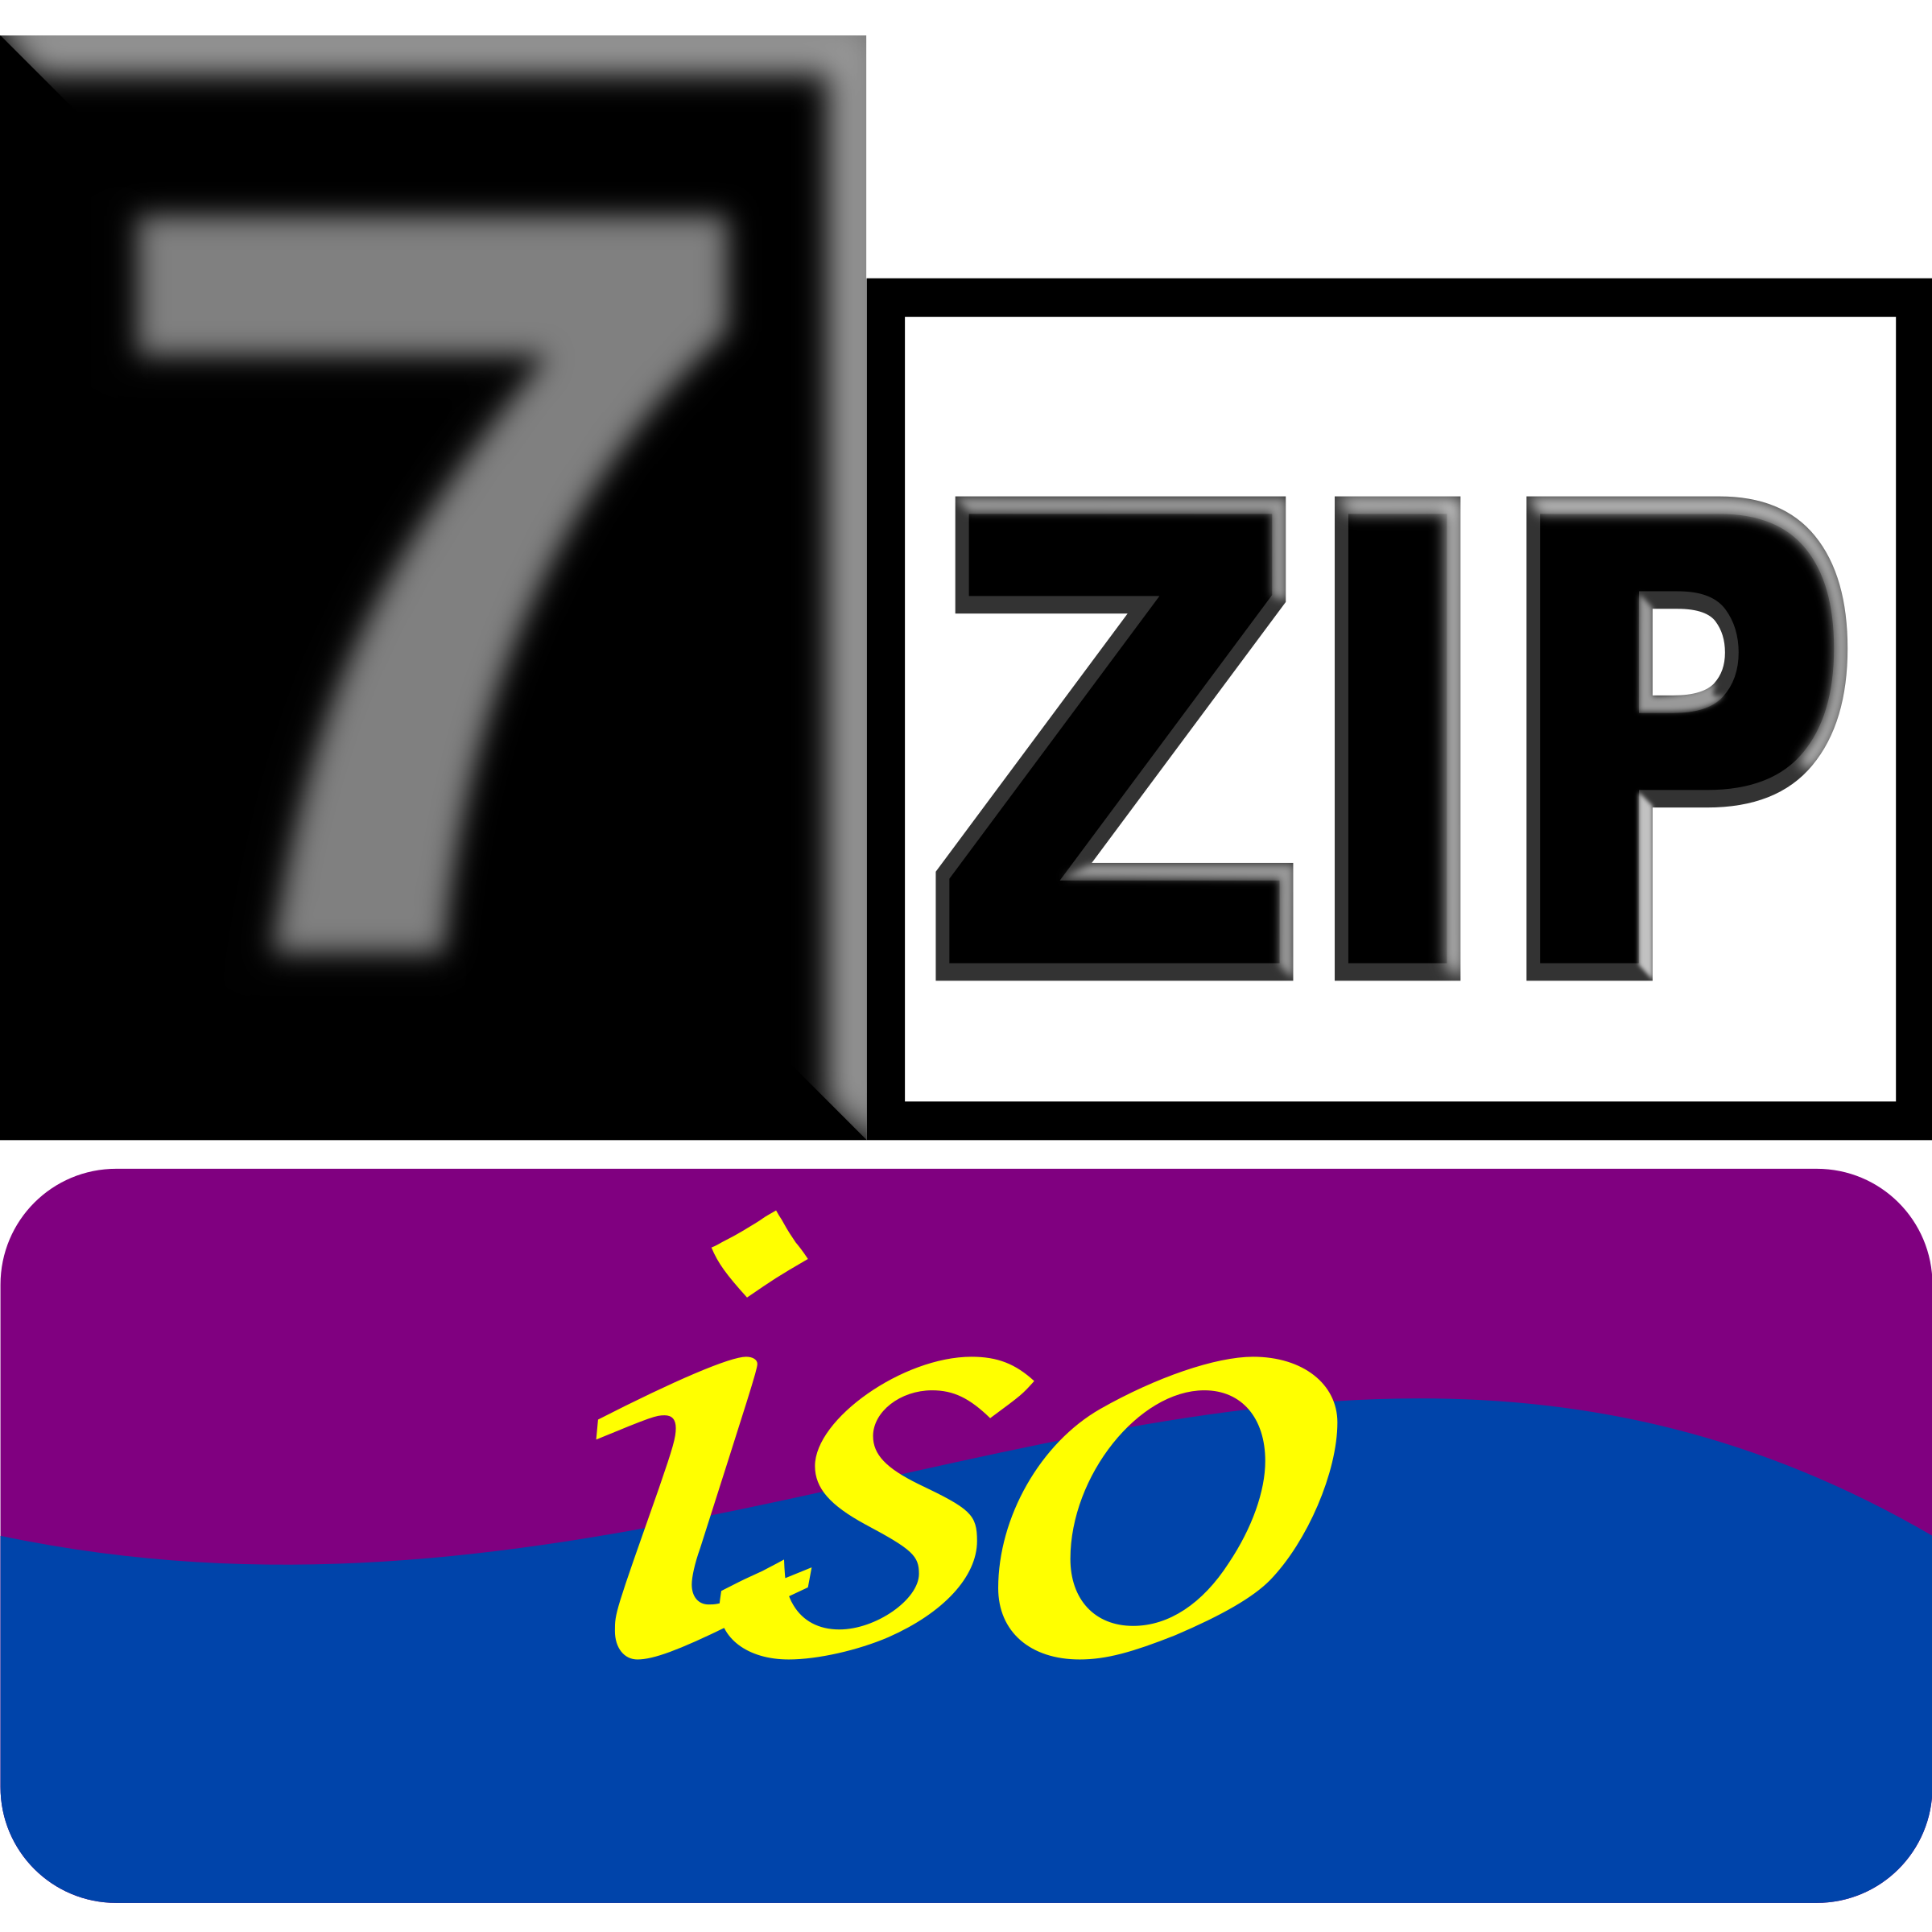 7zipClassic-iso by kg